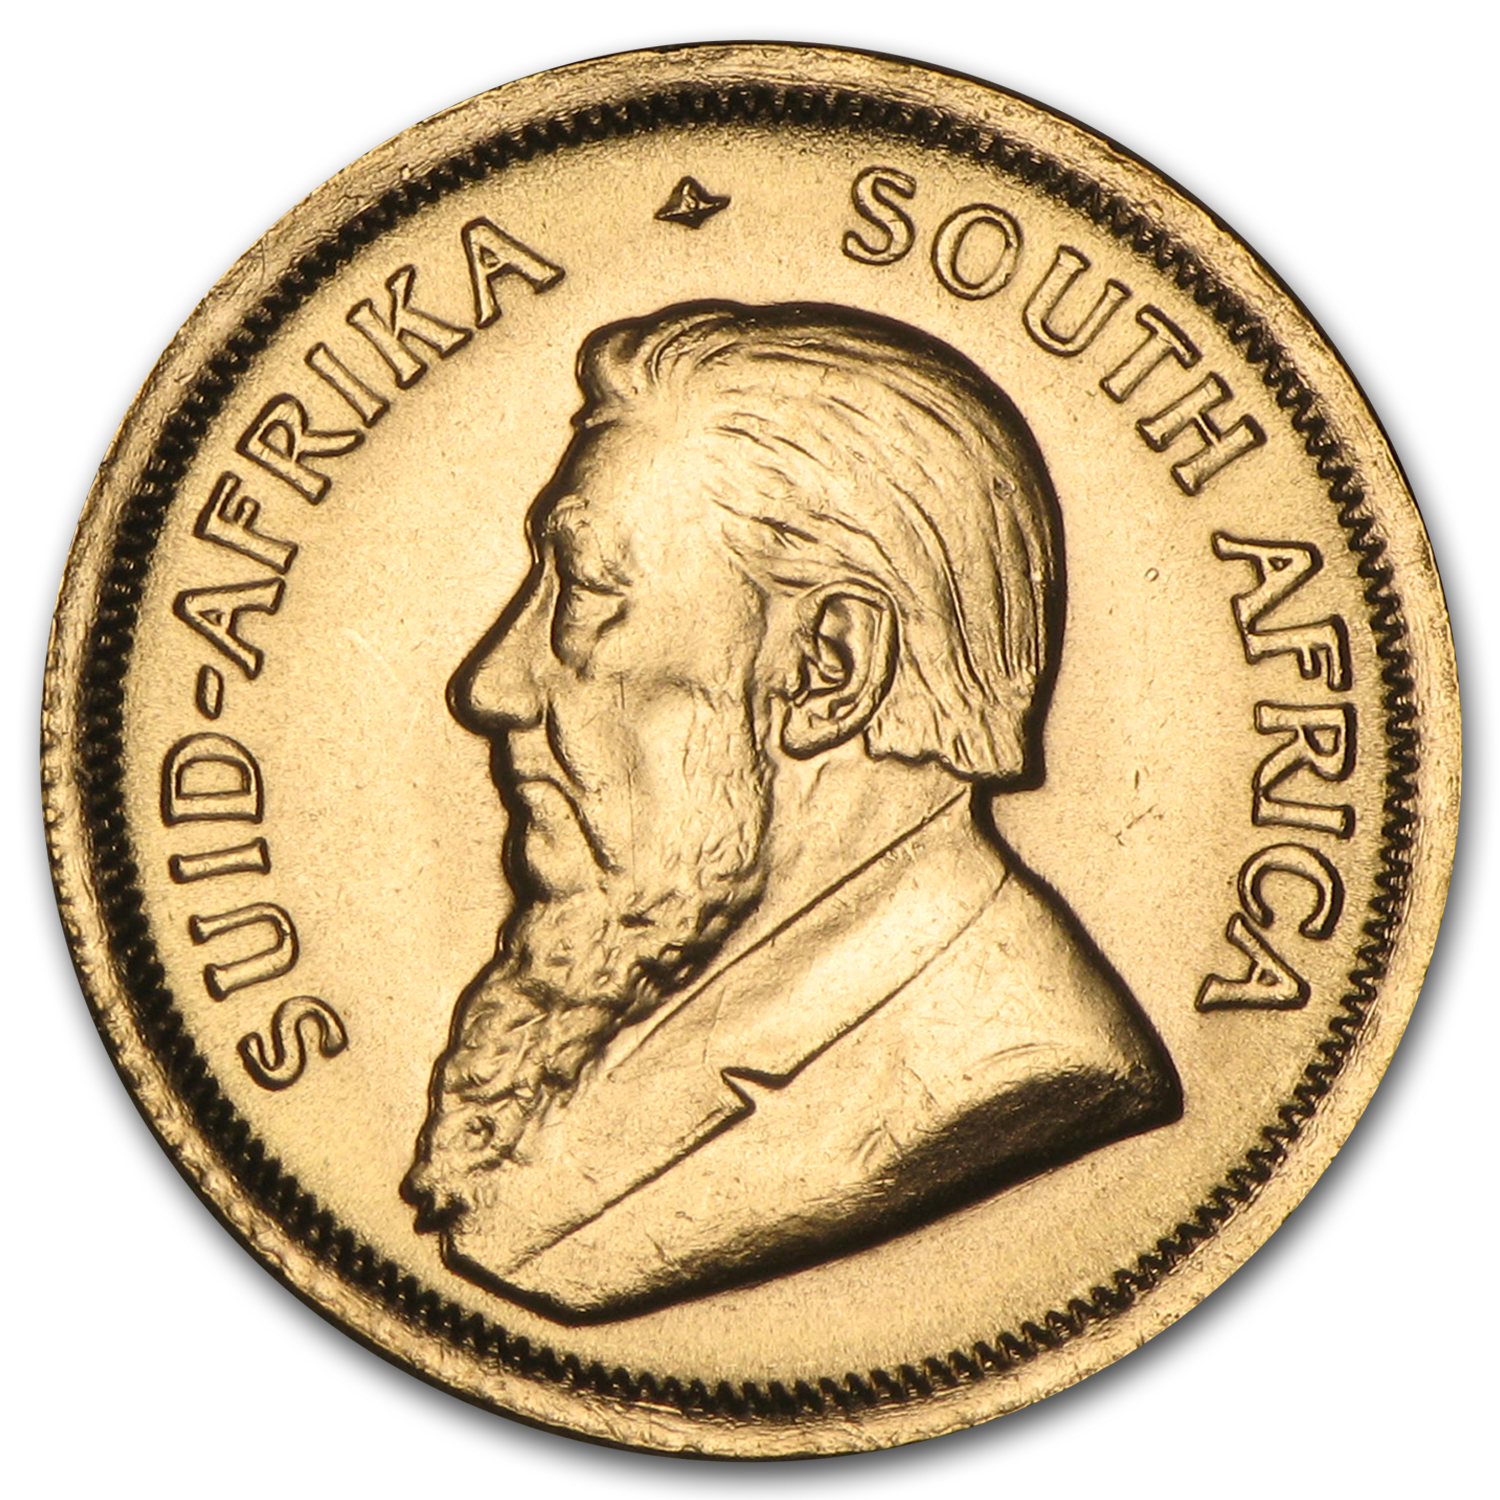 1983 South Africa 1/10 oz Gold Krugerrand